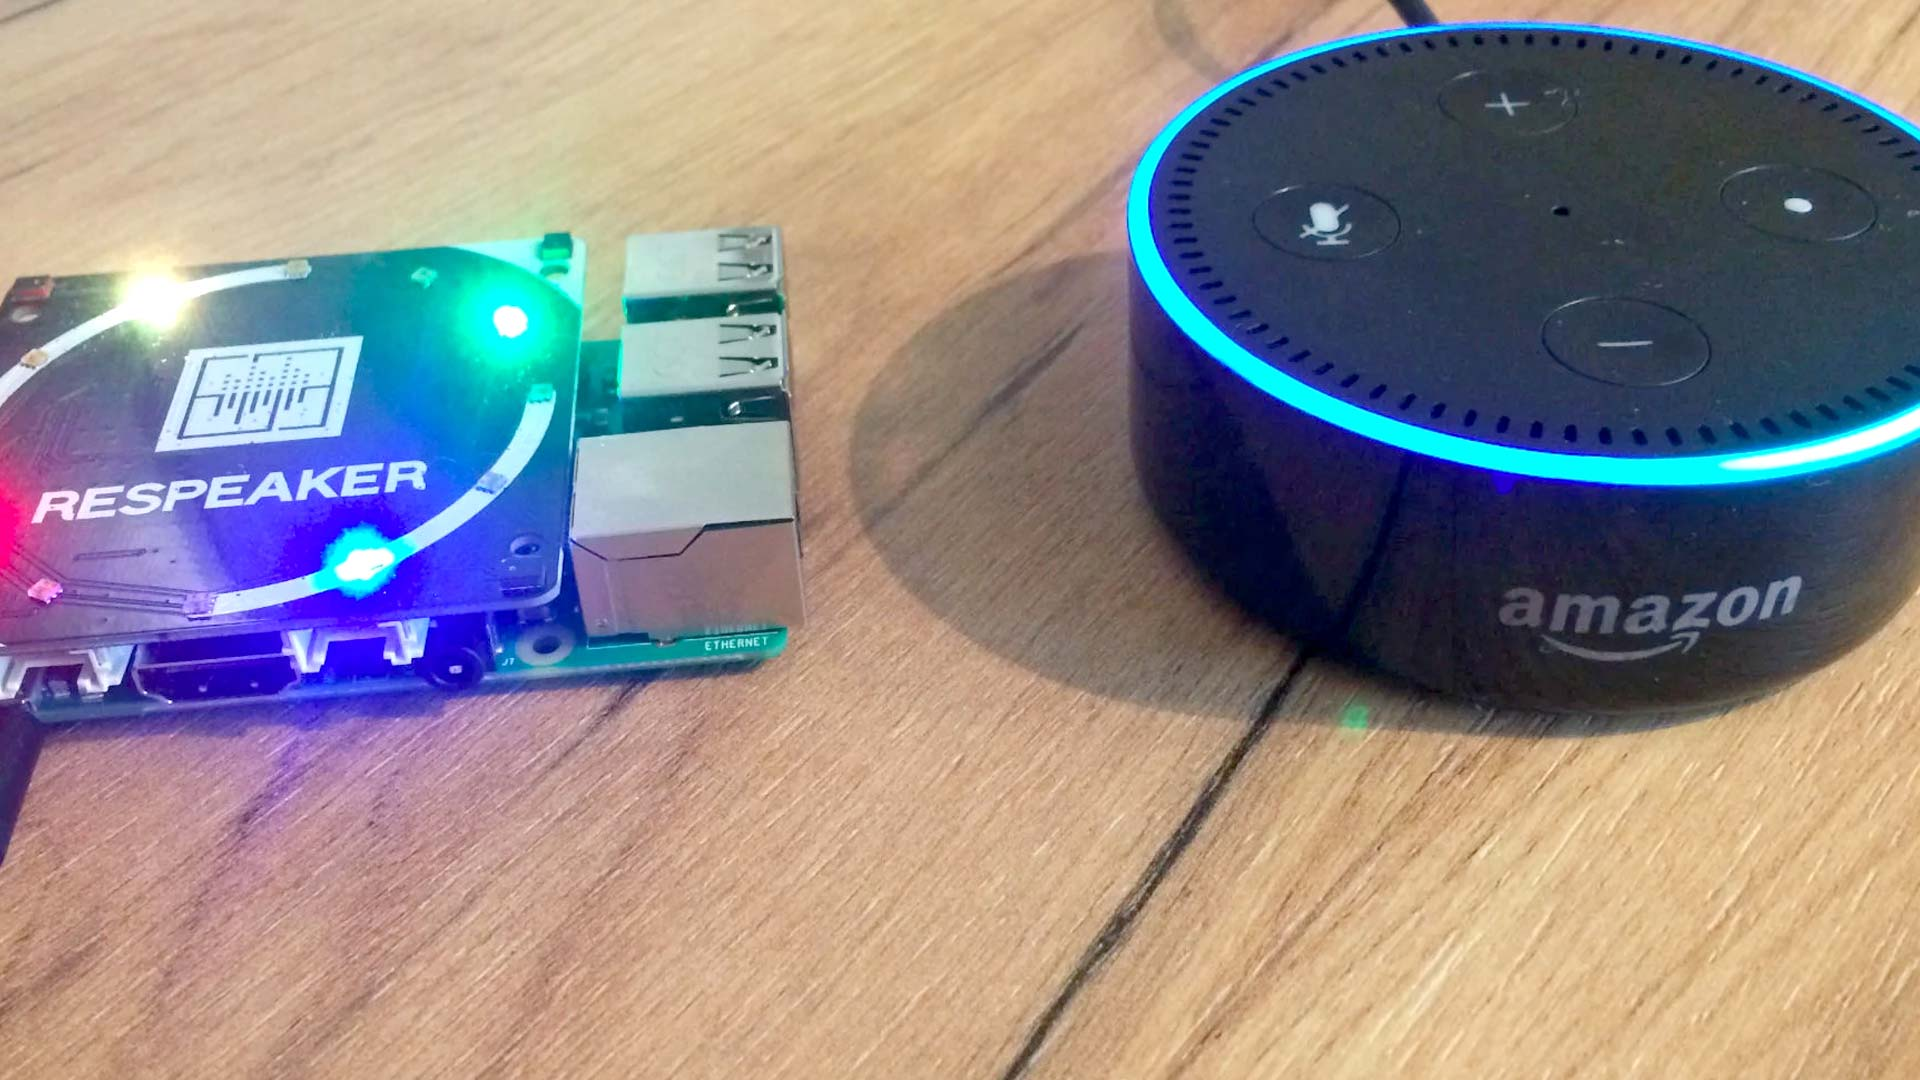 Using voice assistants in business applications